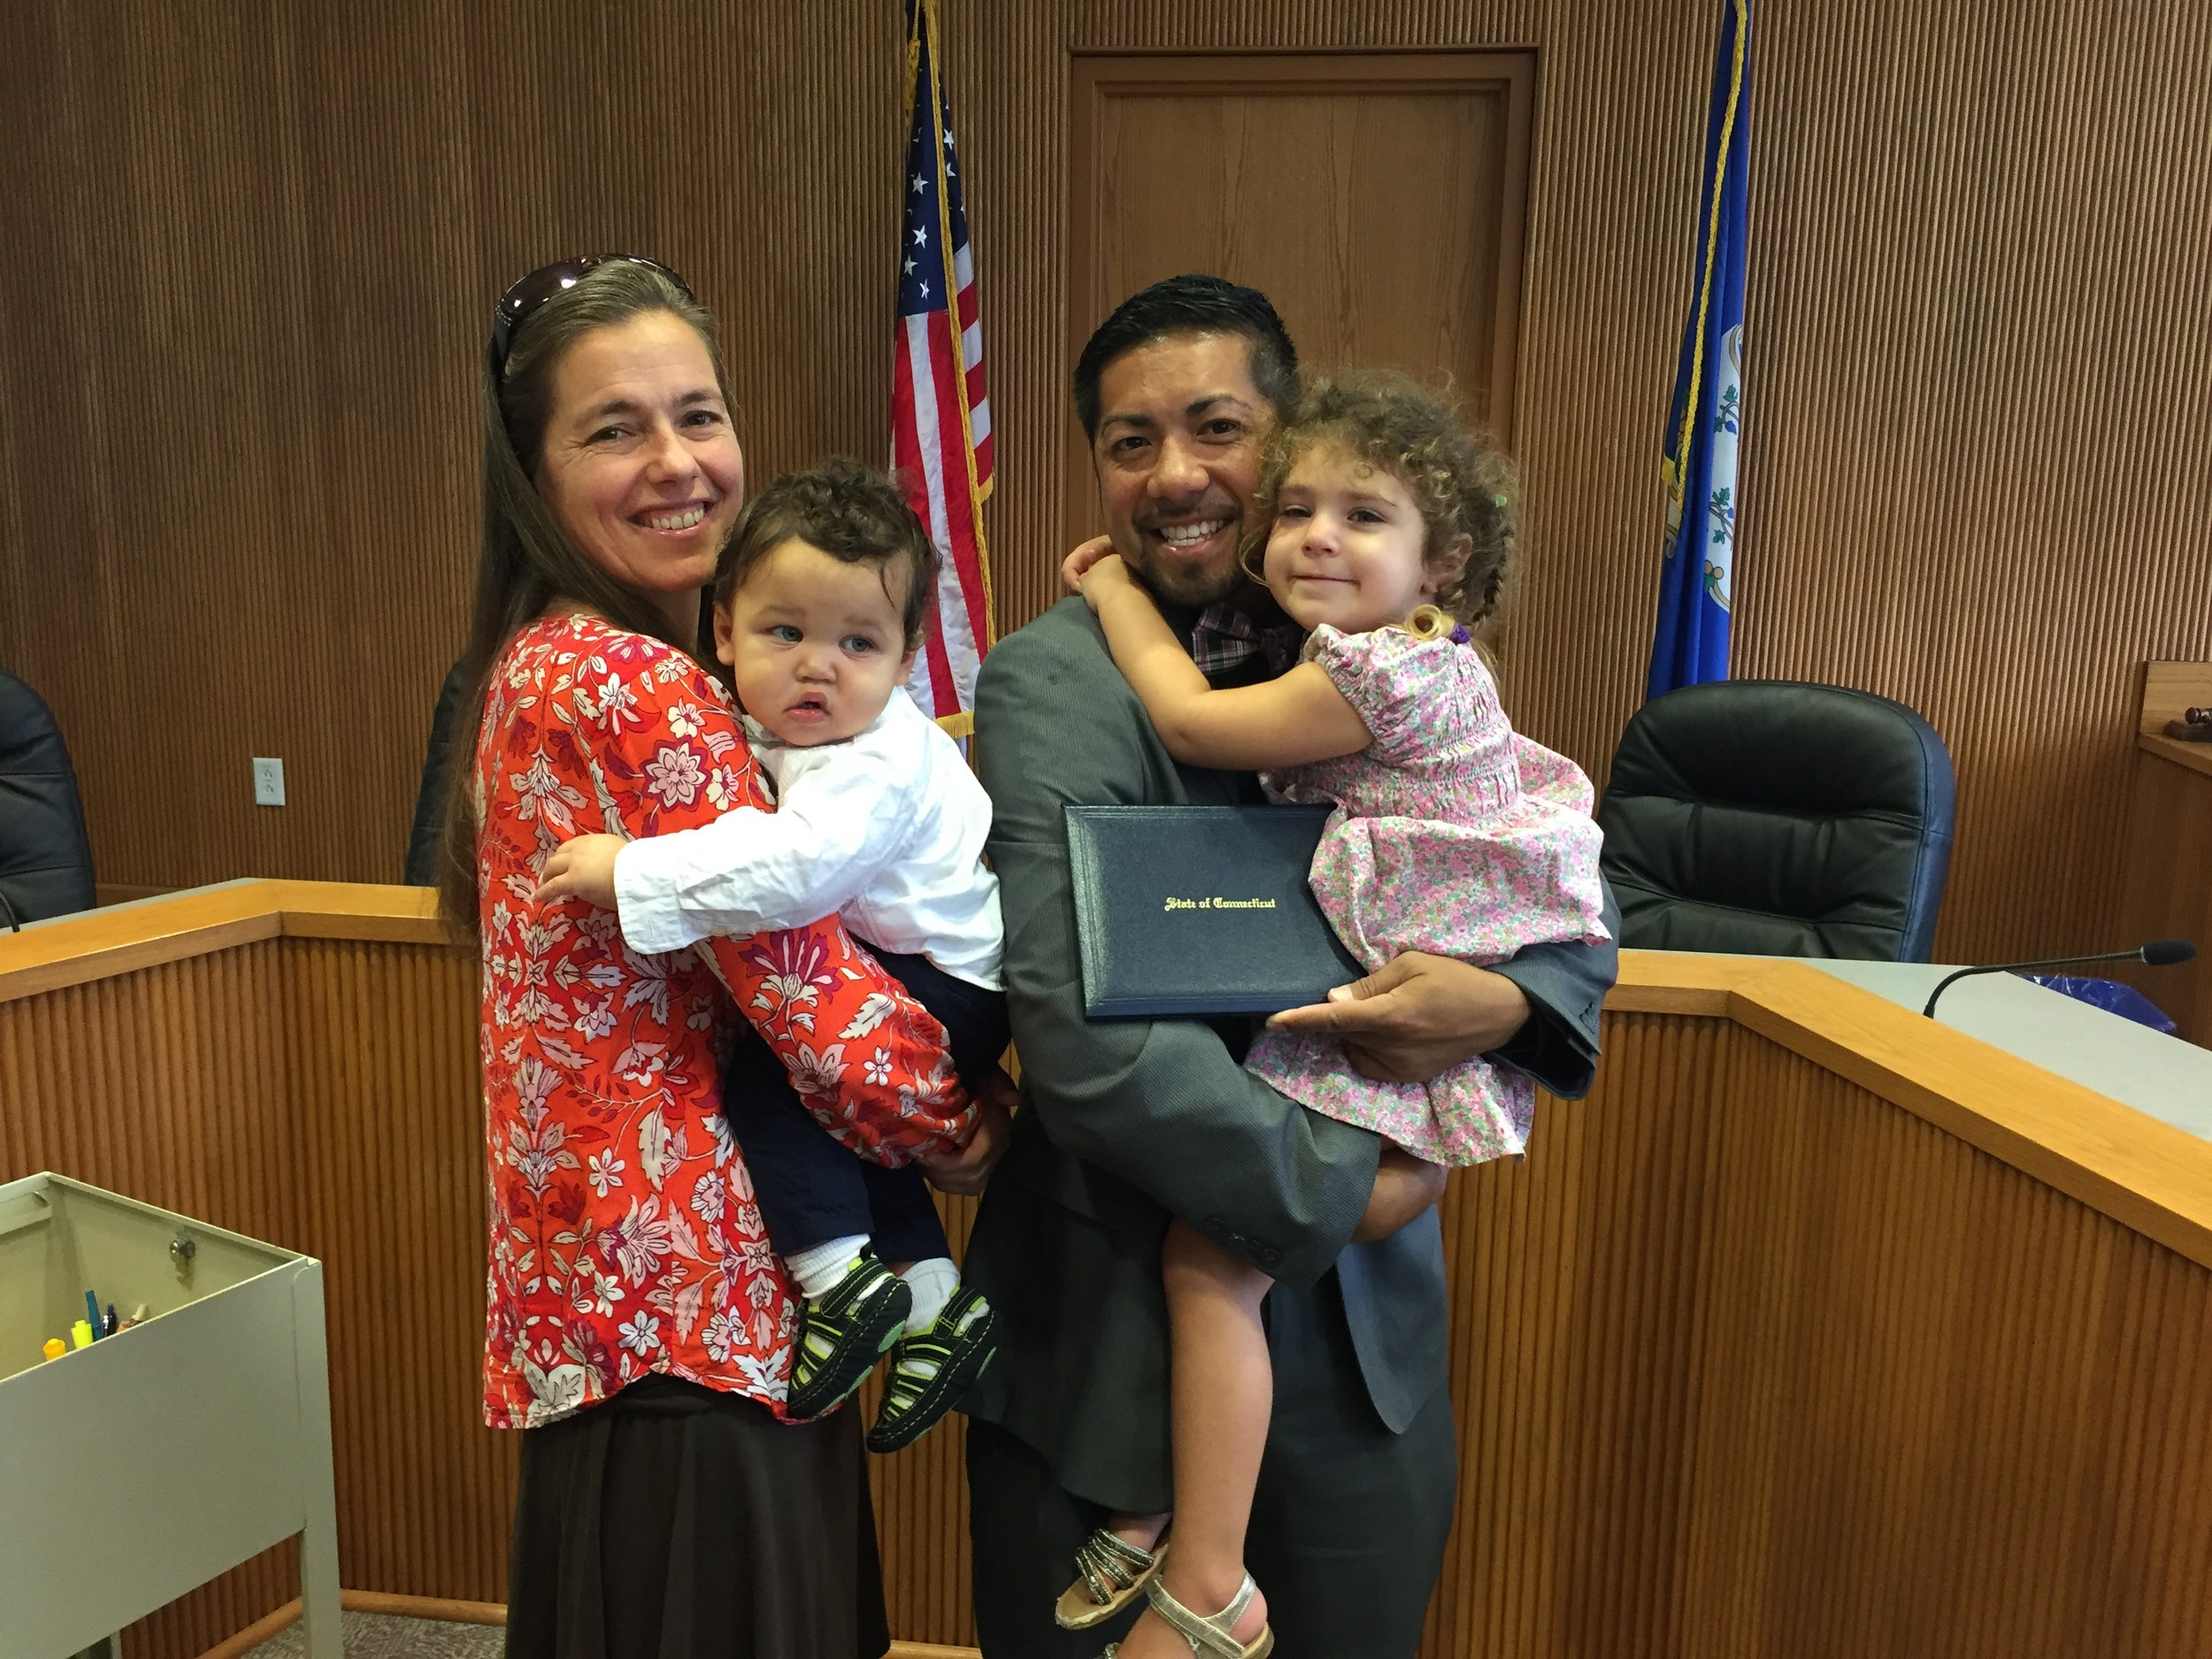 Heather, Aidan Orlando (nine and a half months), Julius, and Ava Constance (3 year ).